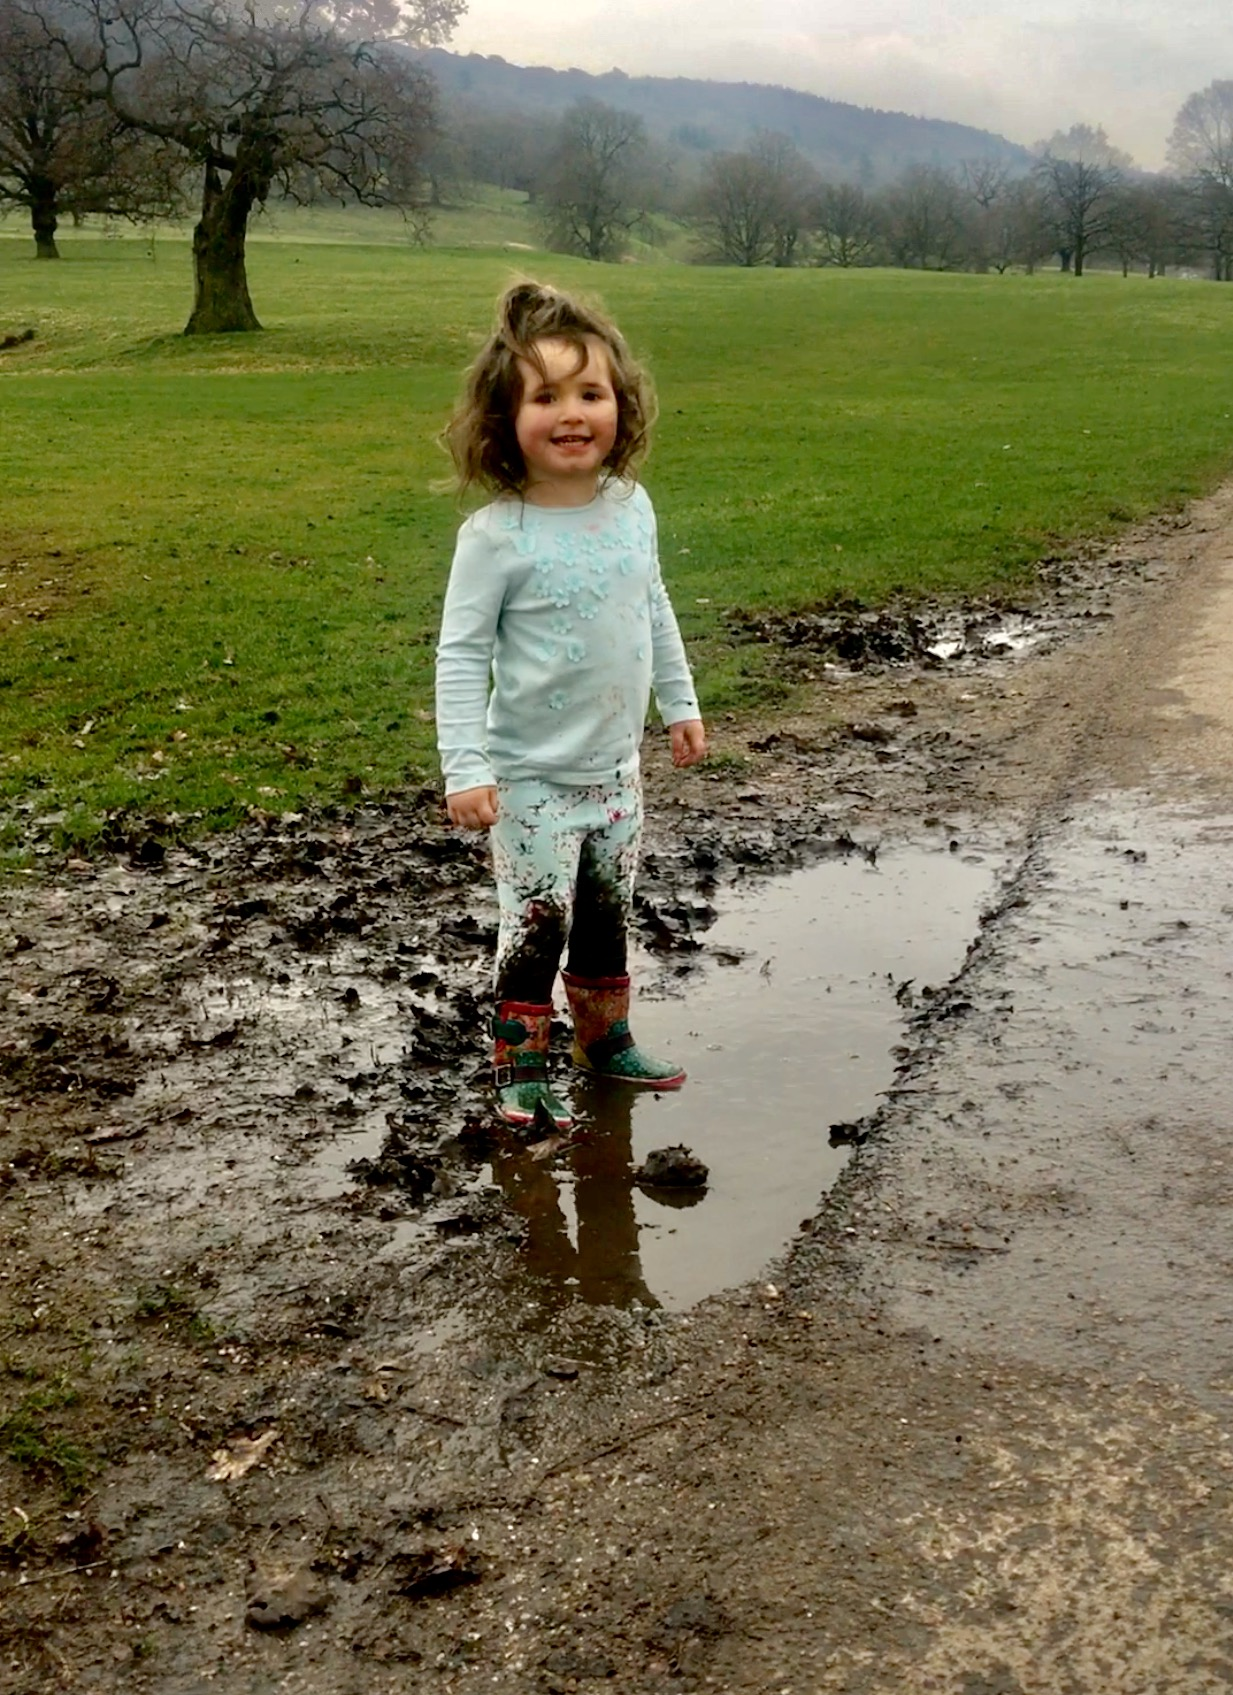 Parenting tips blog, mummy mum parent, free things for kids days out